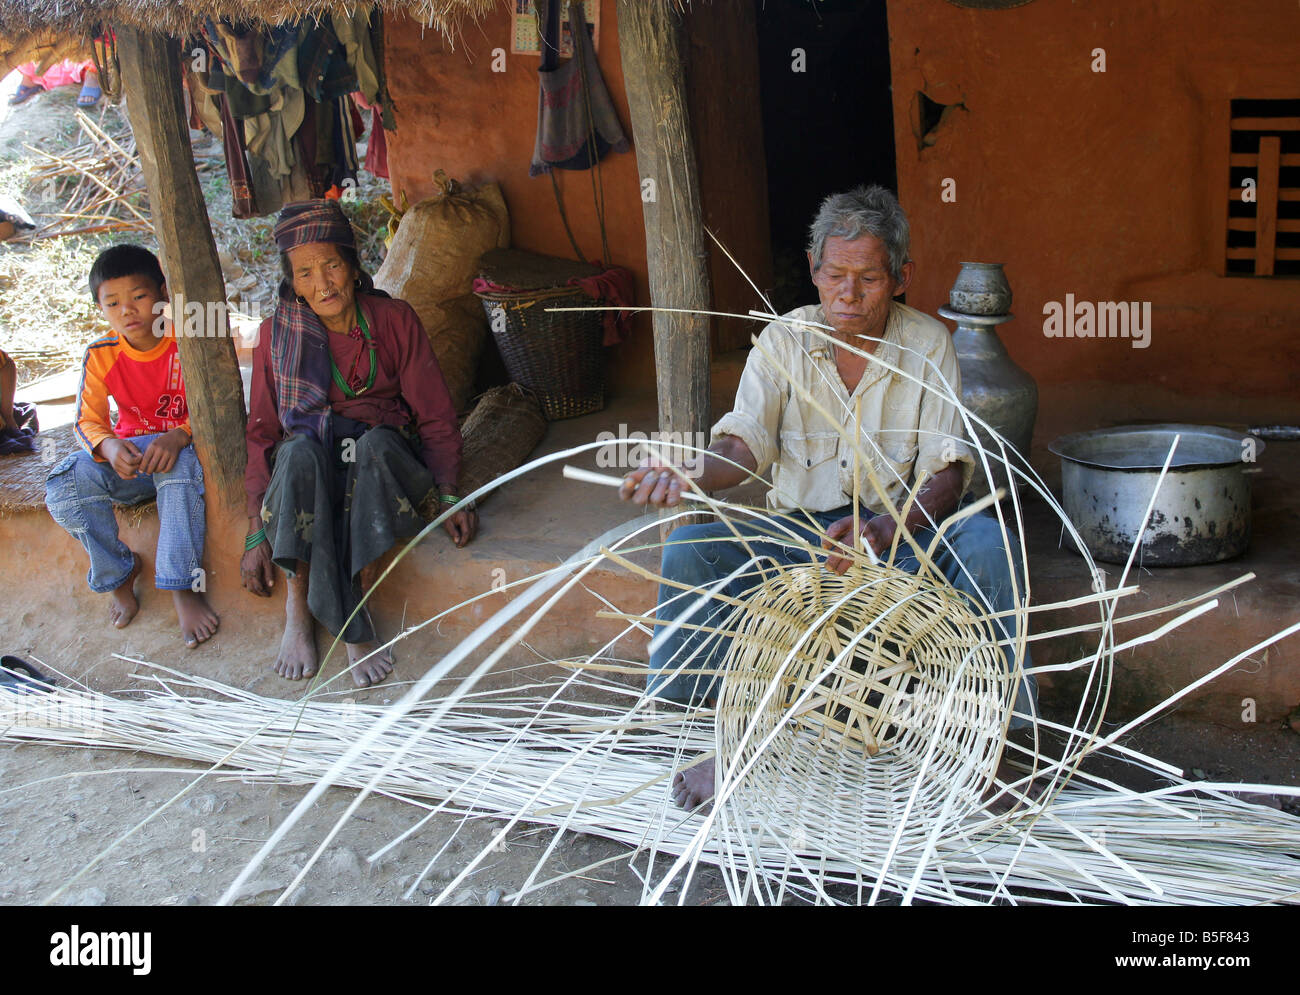 Nepal: Wicker worker in a mountain village in the Himalaya mountains - Stock Image